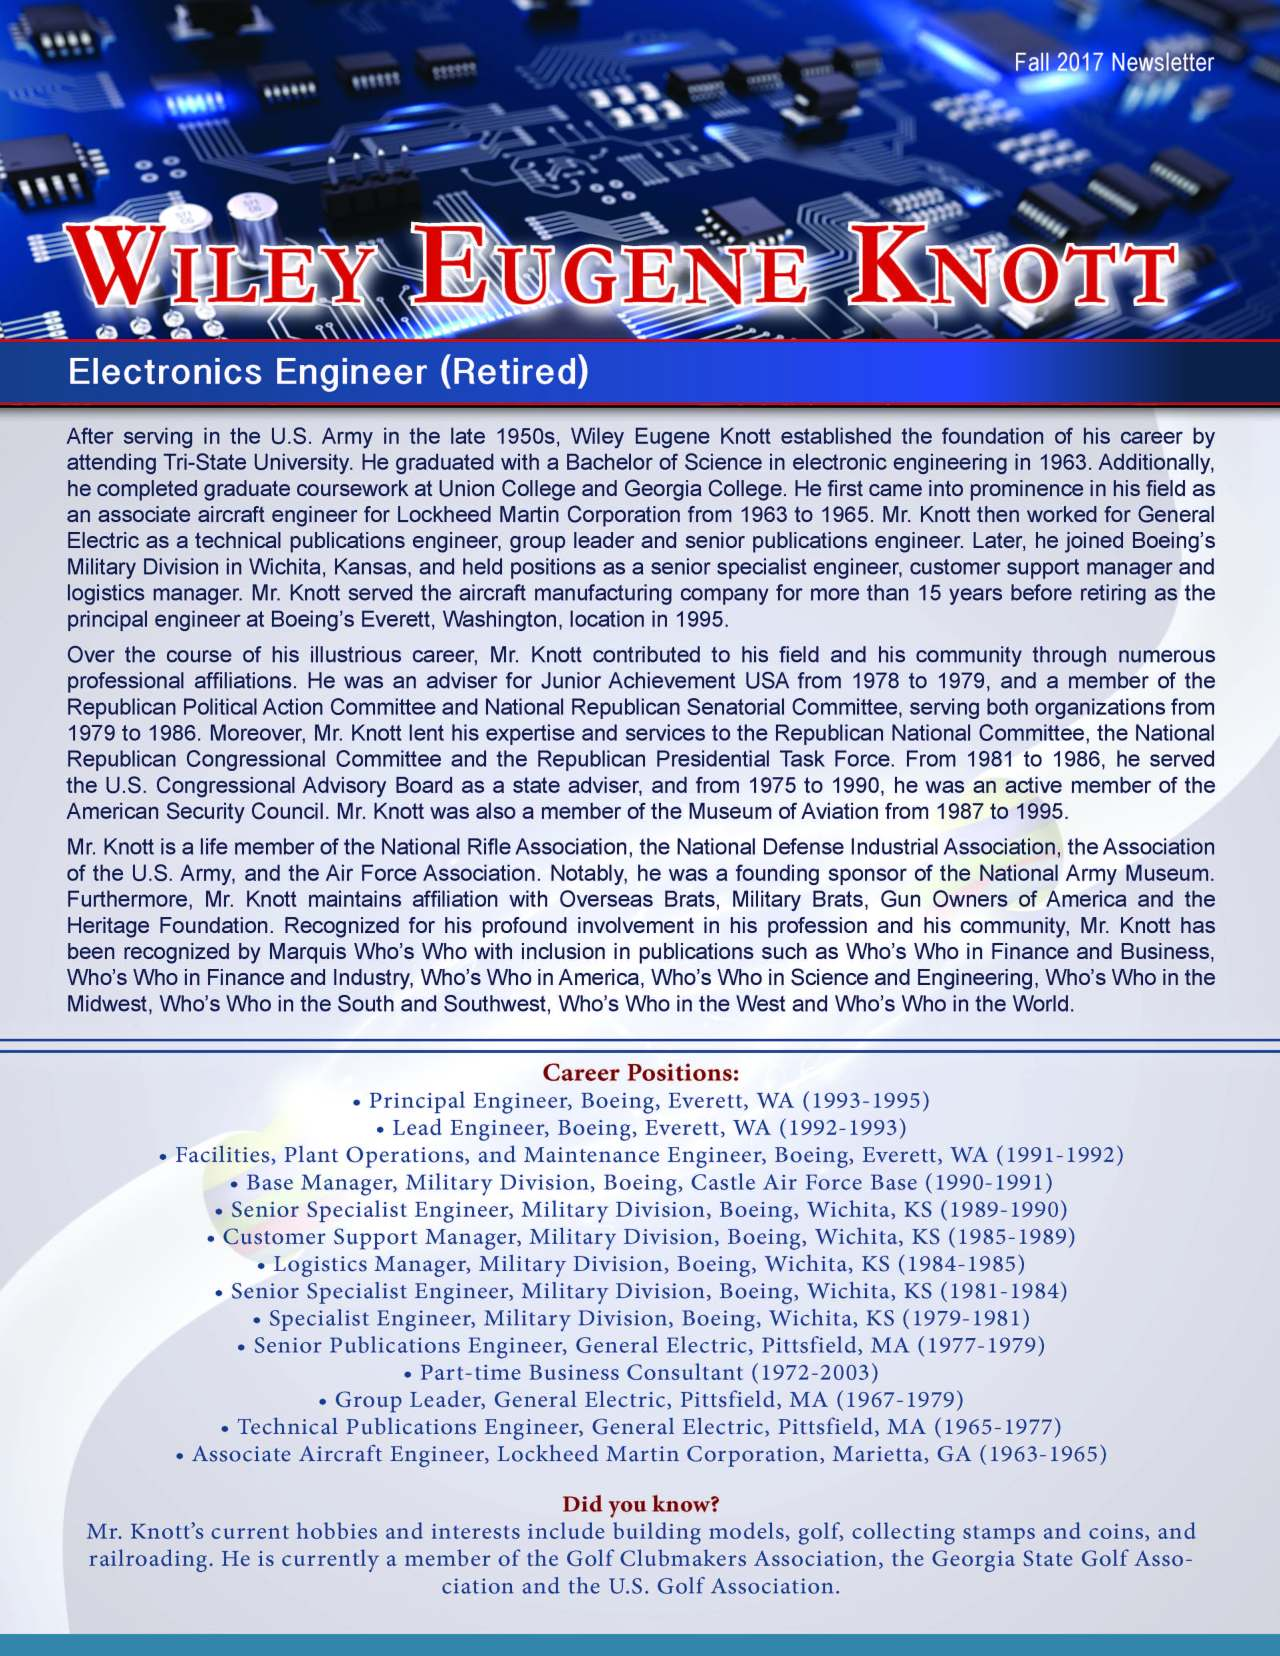 Knott, Wiley 3638256_92612 Newsletter.jpg